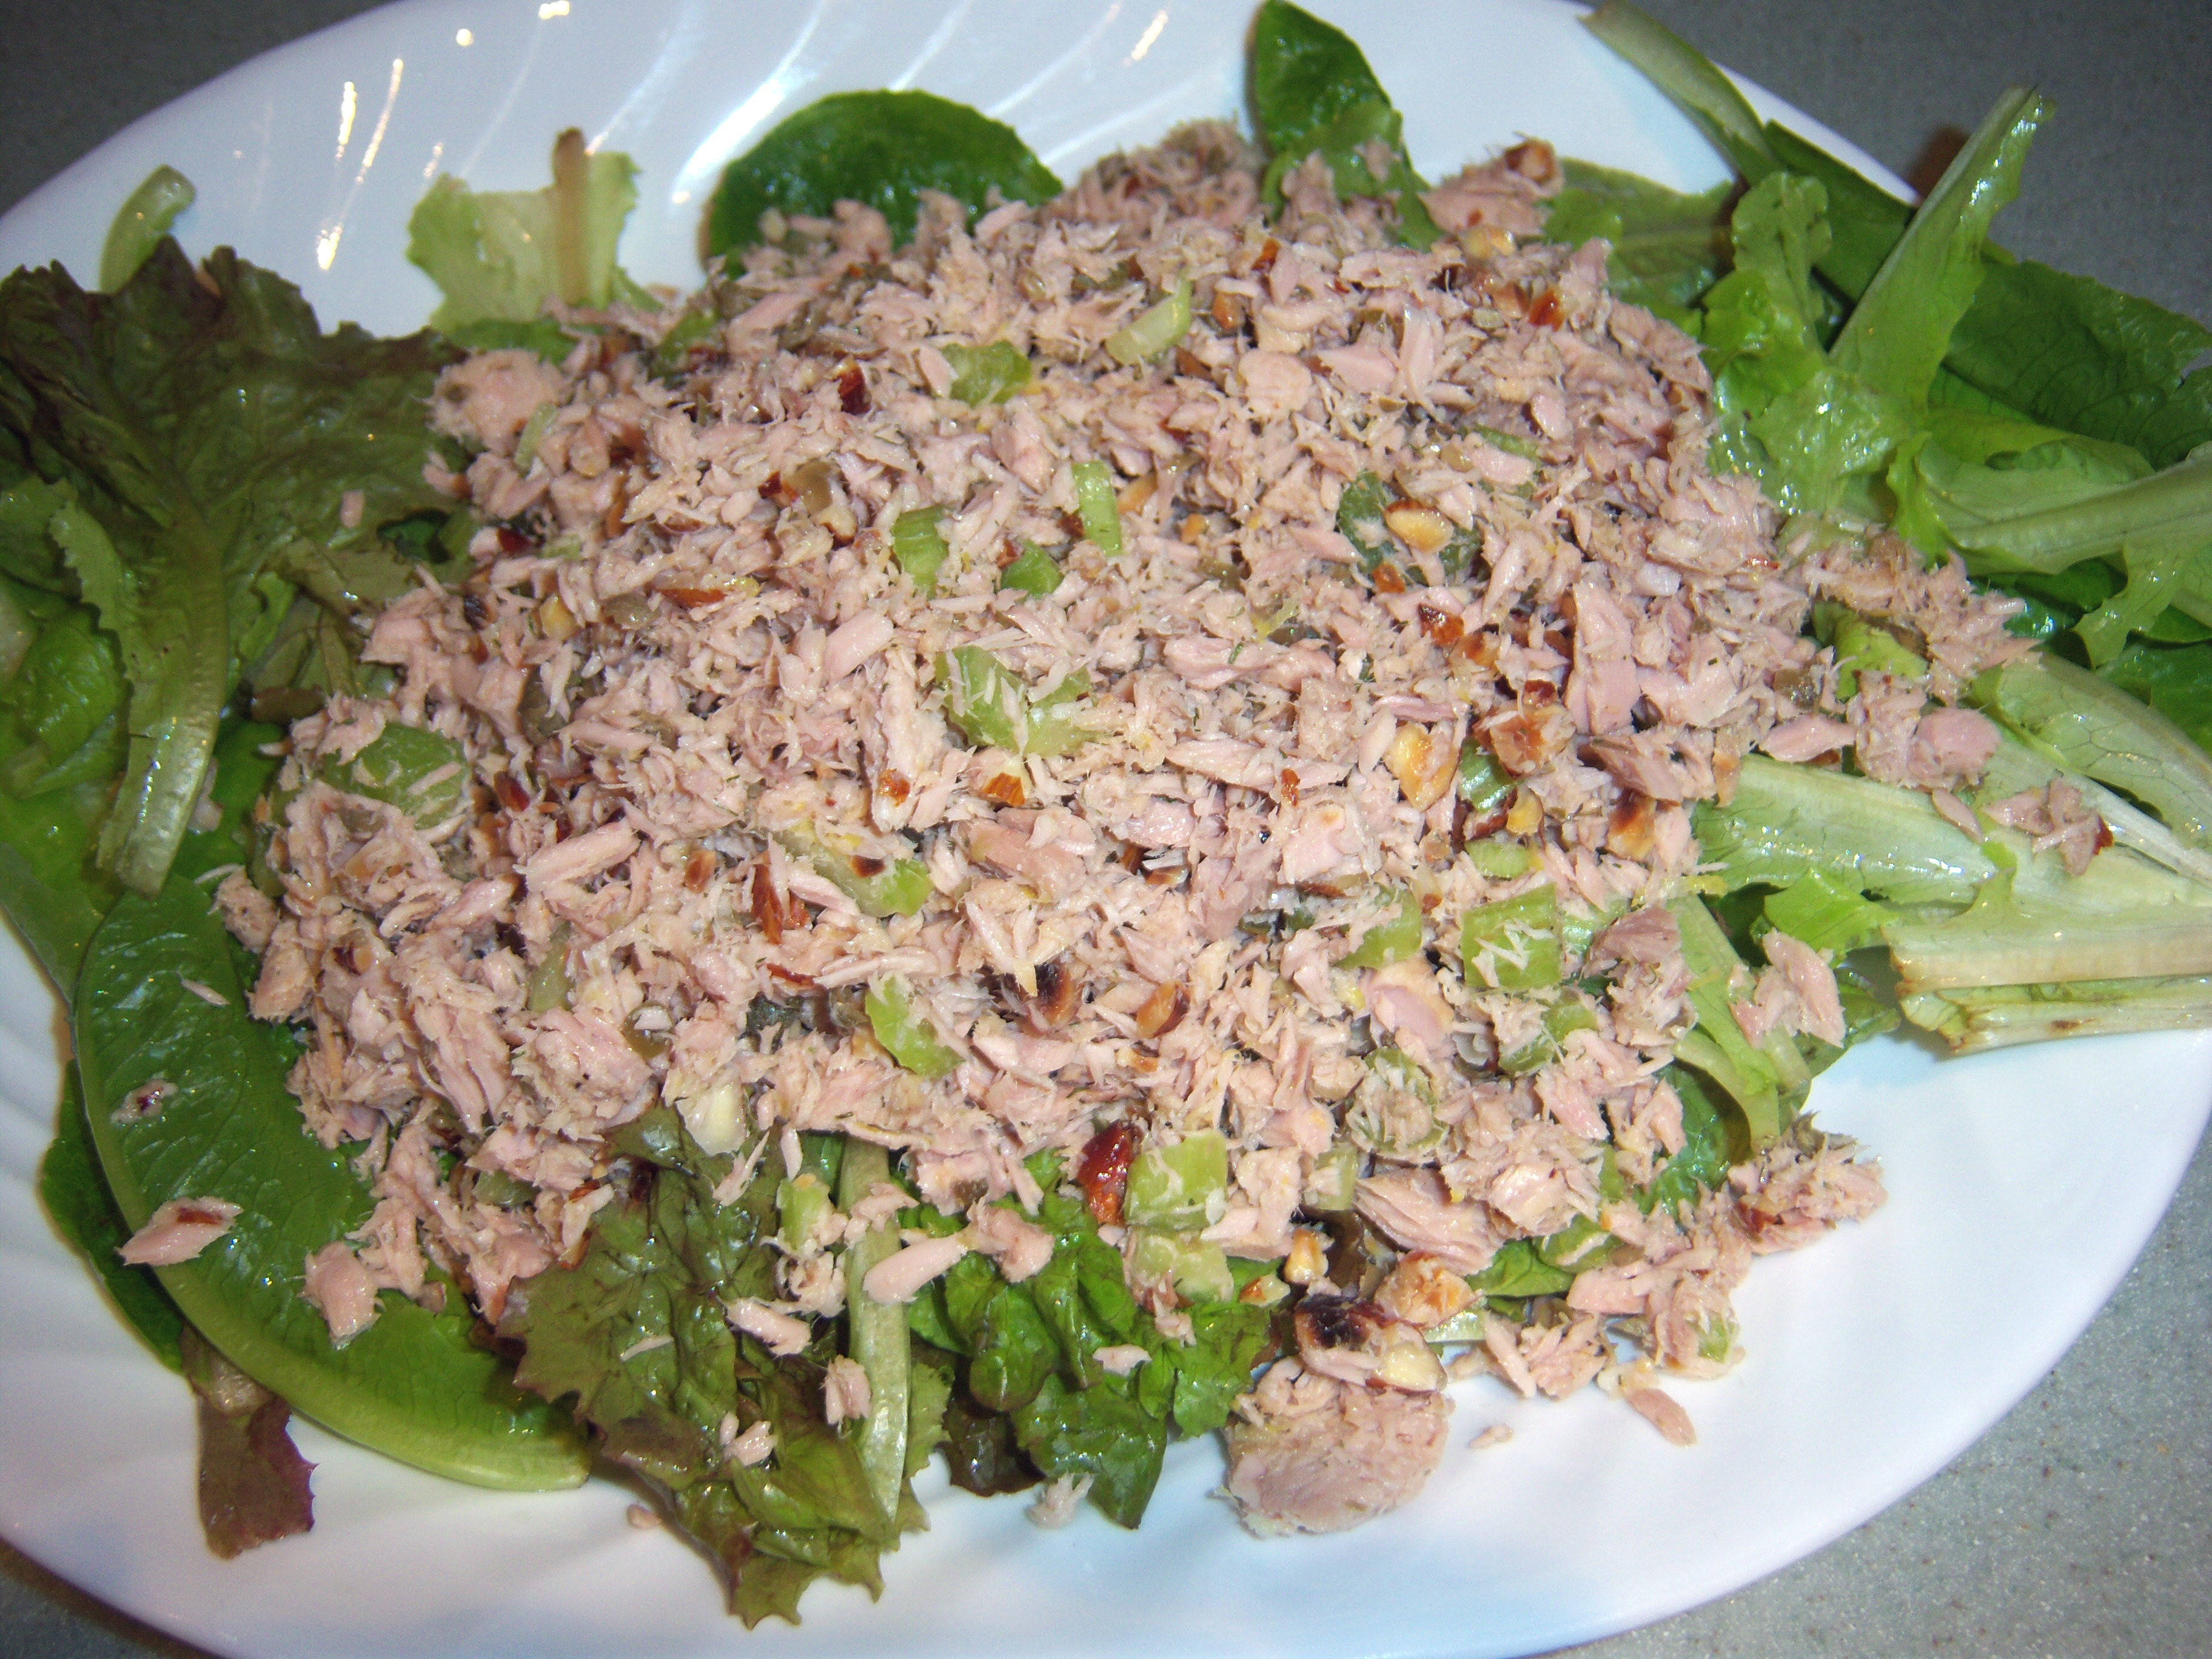 How to make p90x fat shredder foods taste better rippedclub for Tuna fish salad calories